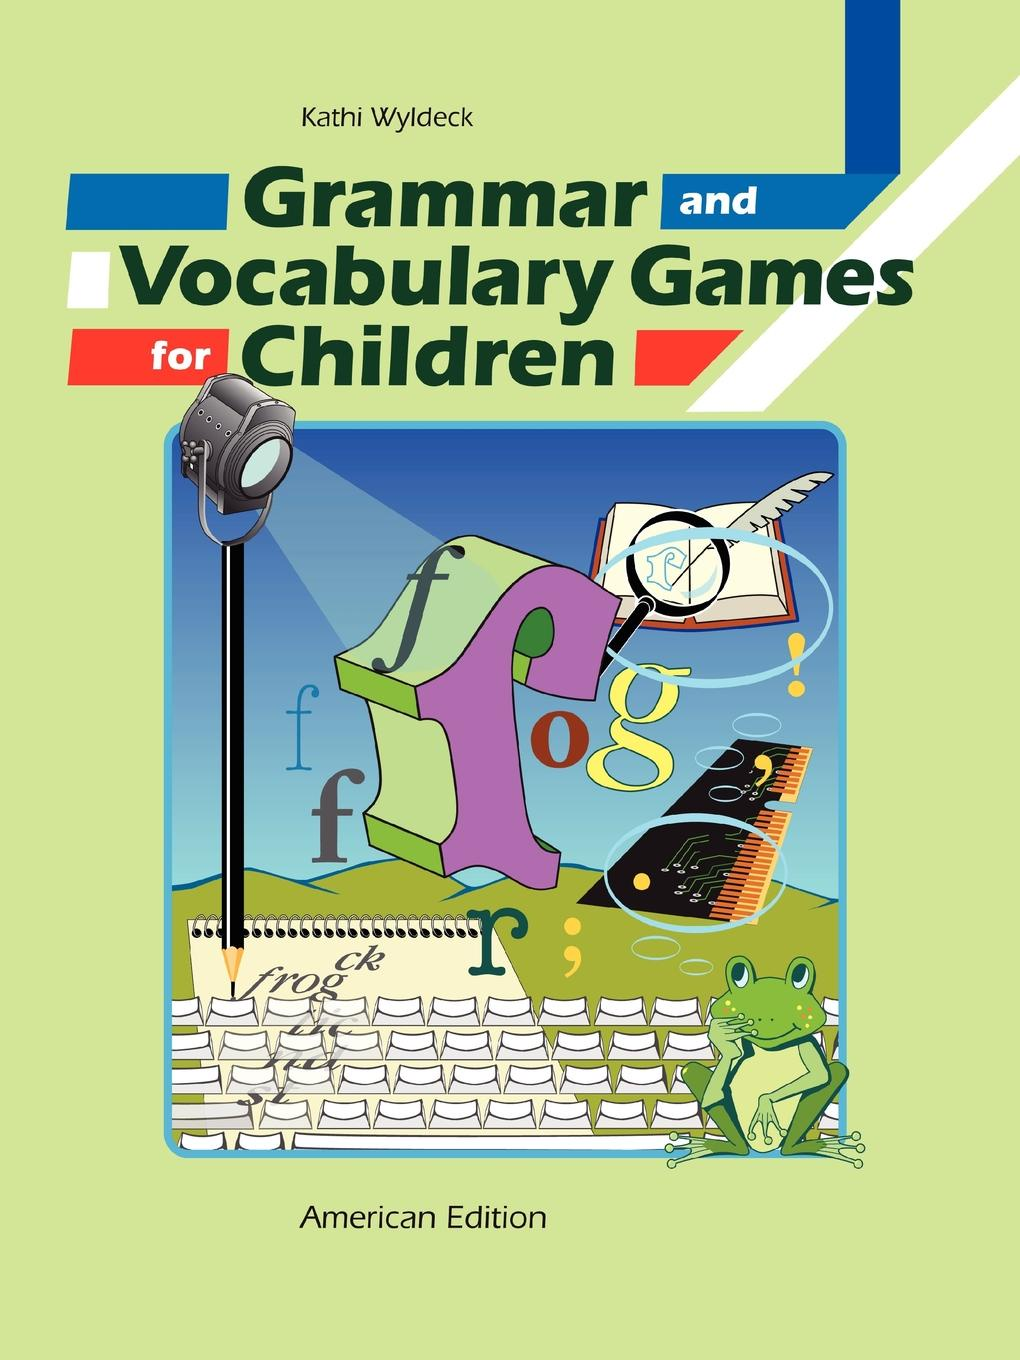 Kathi Wyldeck Grammar and Vocabulary Games for Children